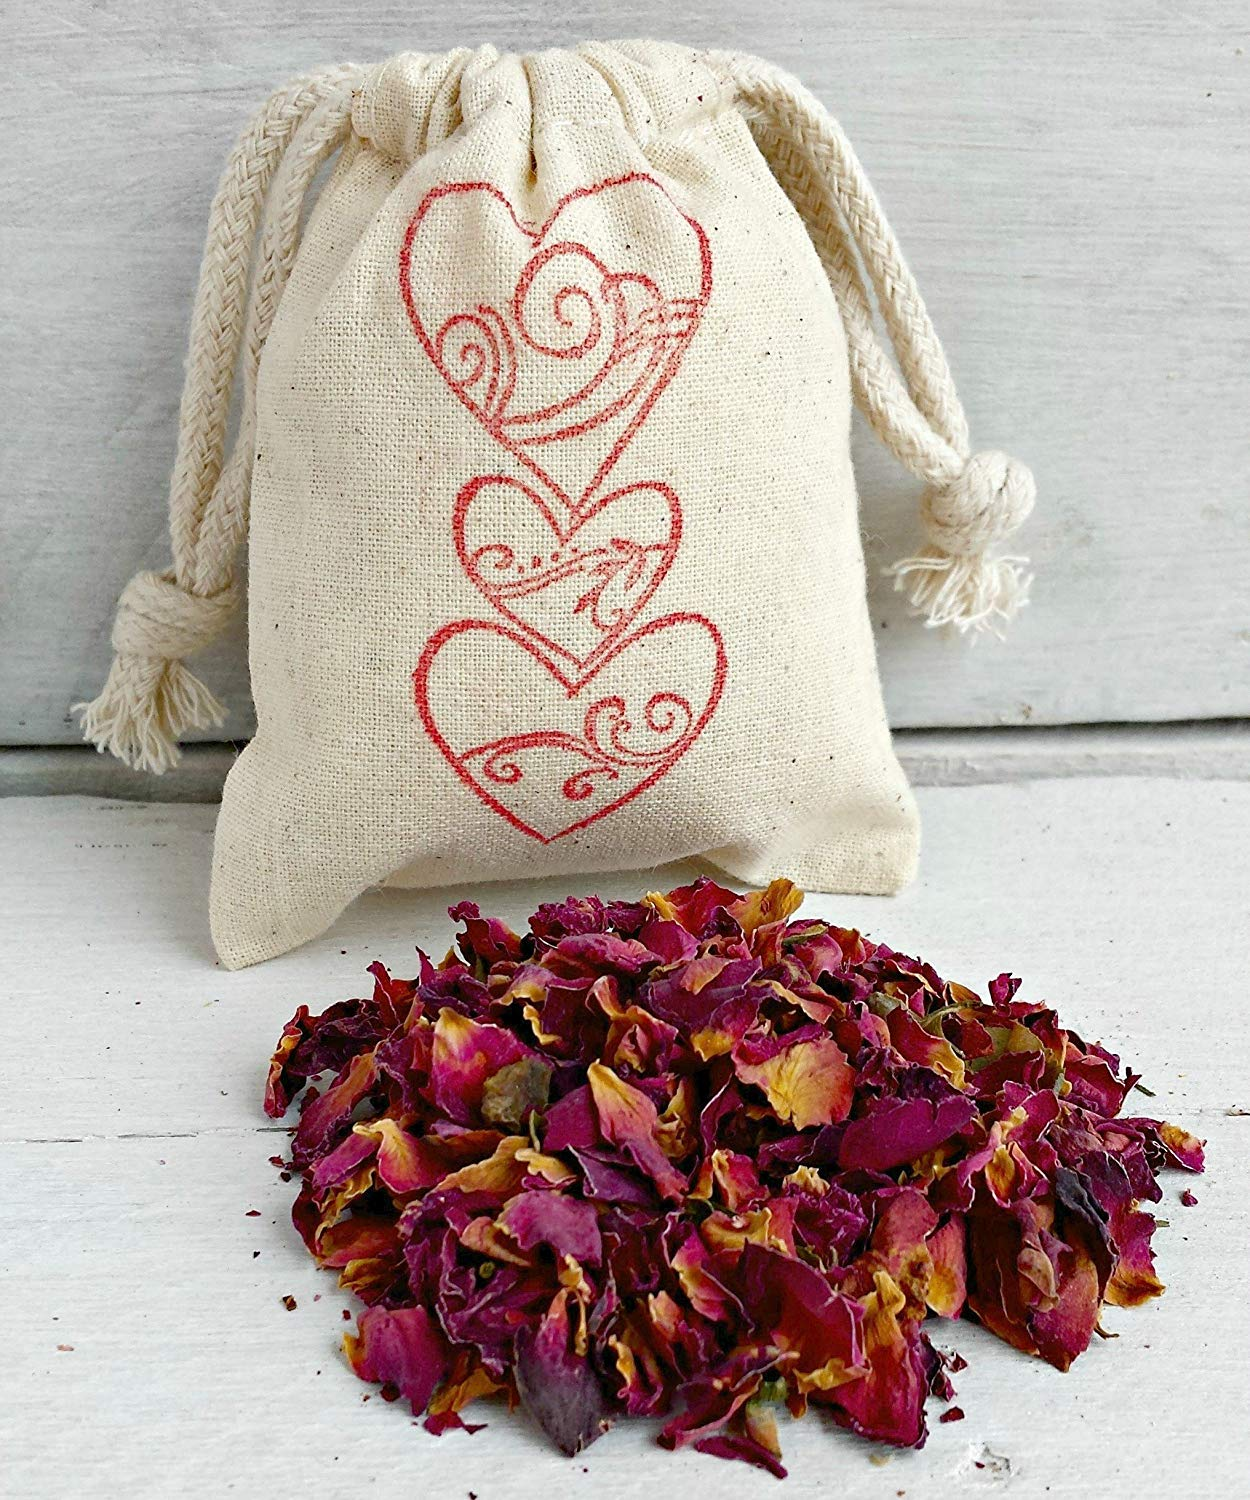 Rose Petal Sachets Bags | Rose Scented Sachets | Aromatherapy Sachet Favors | Rose Wedding Favors | Scented Drawer Sachets | Drawer Sachets